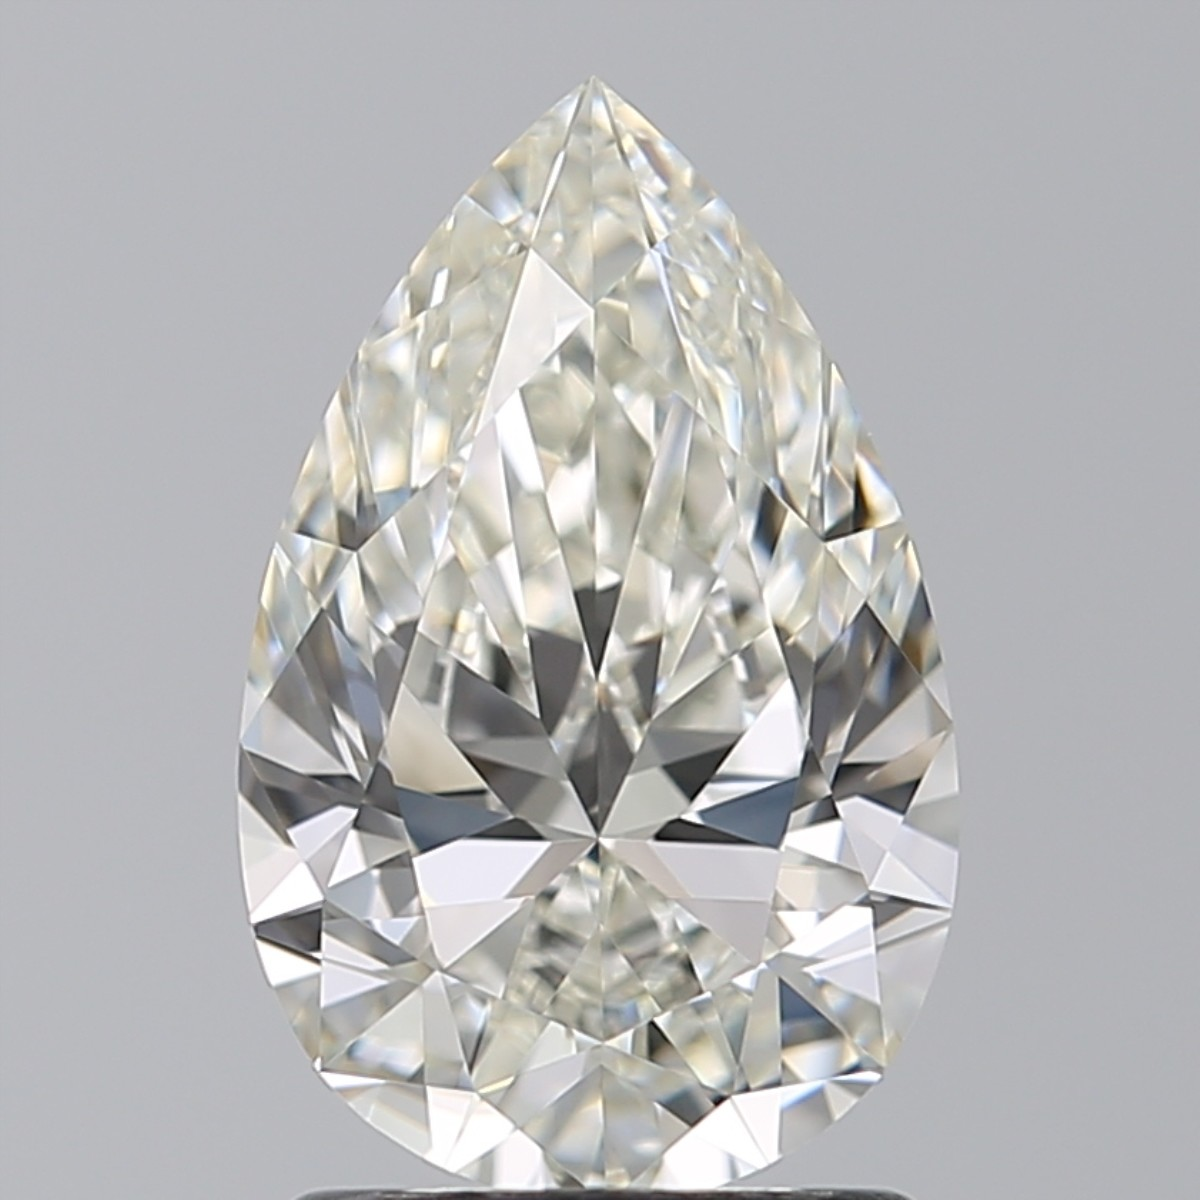 1.54 Carat Pear Diamond (I/IF)